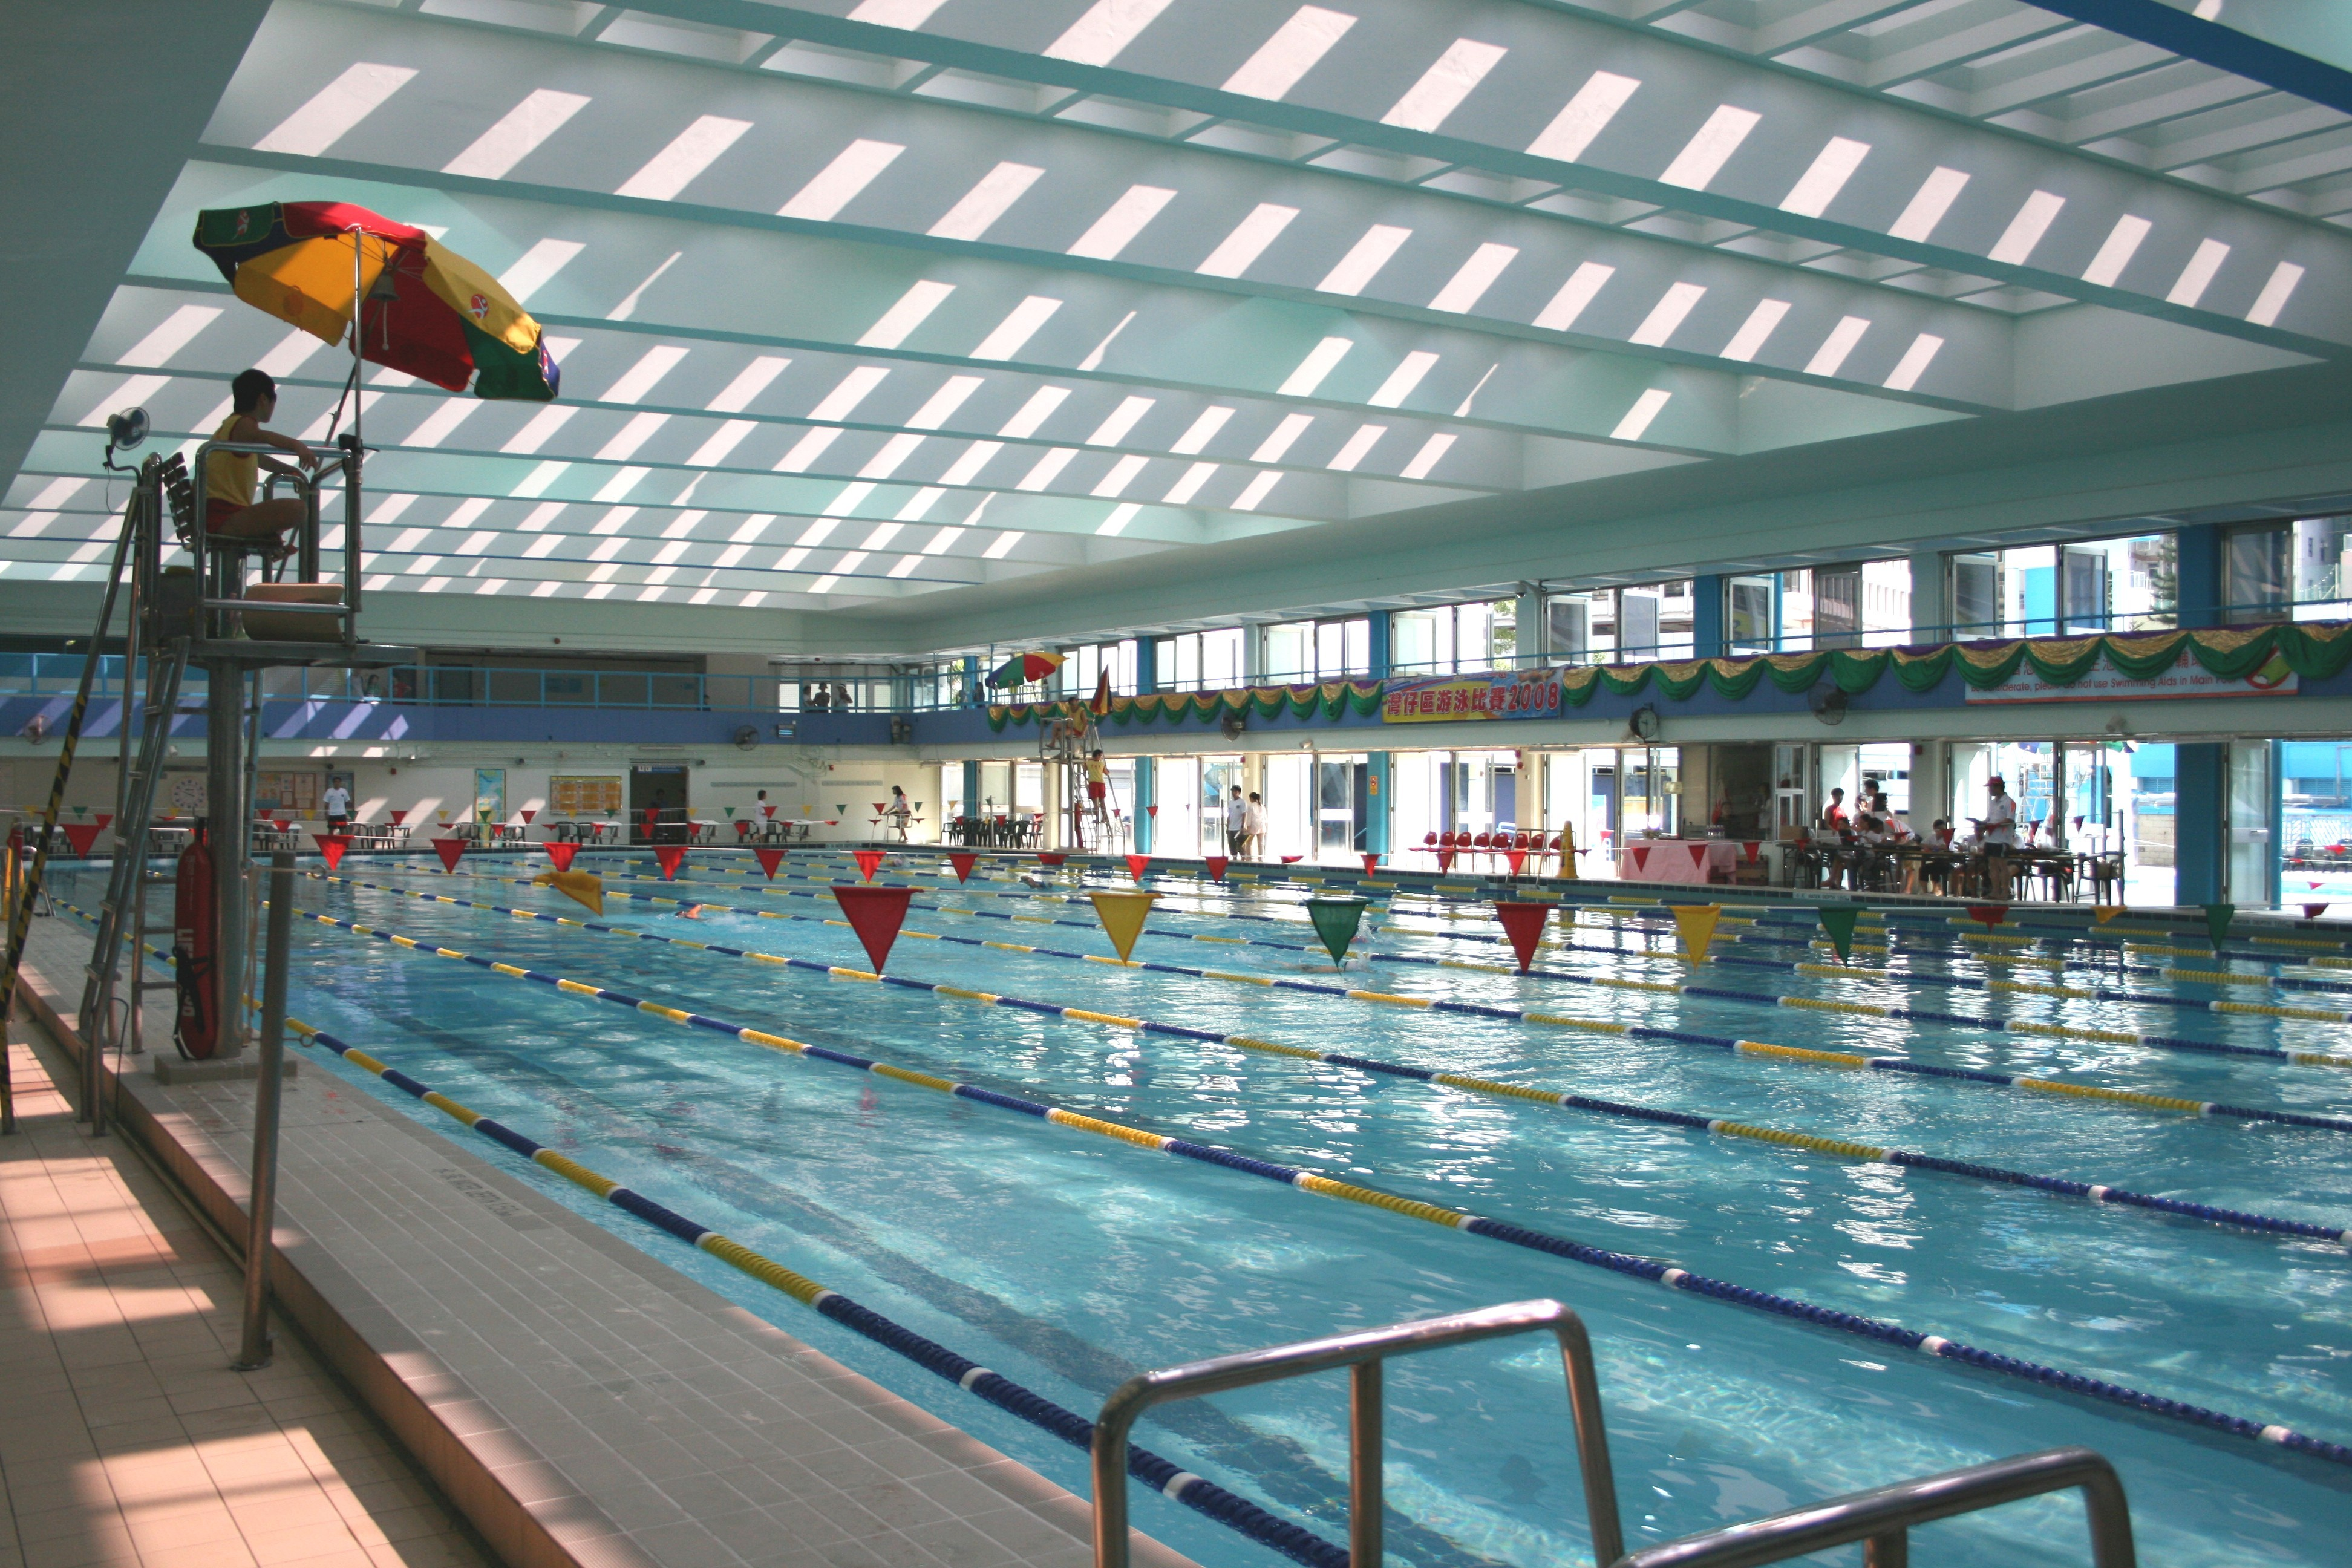 for Park road swimming pool opening times